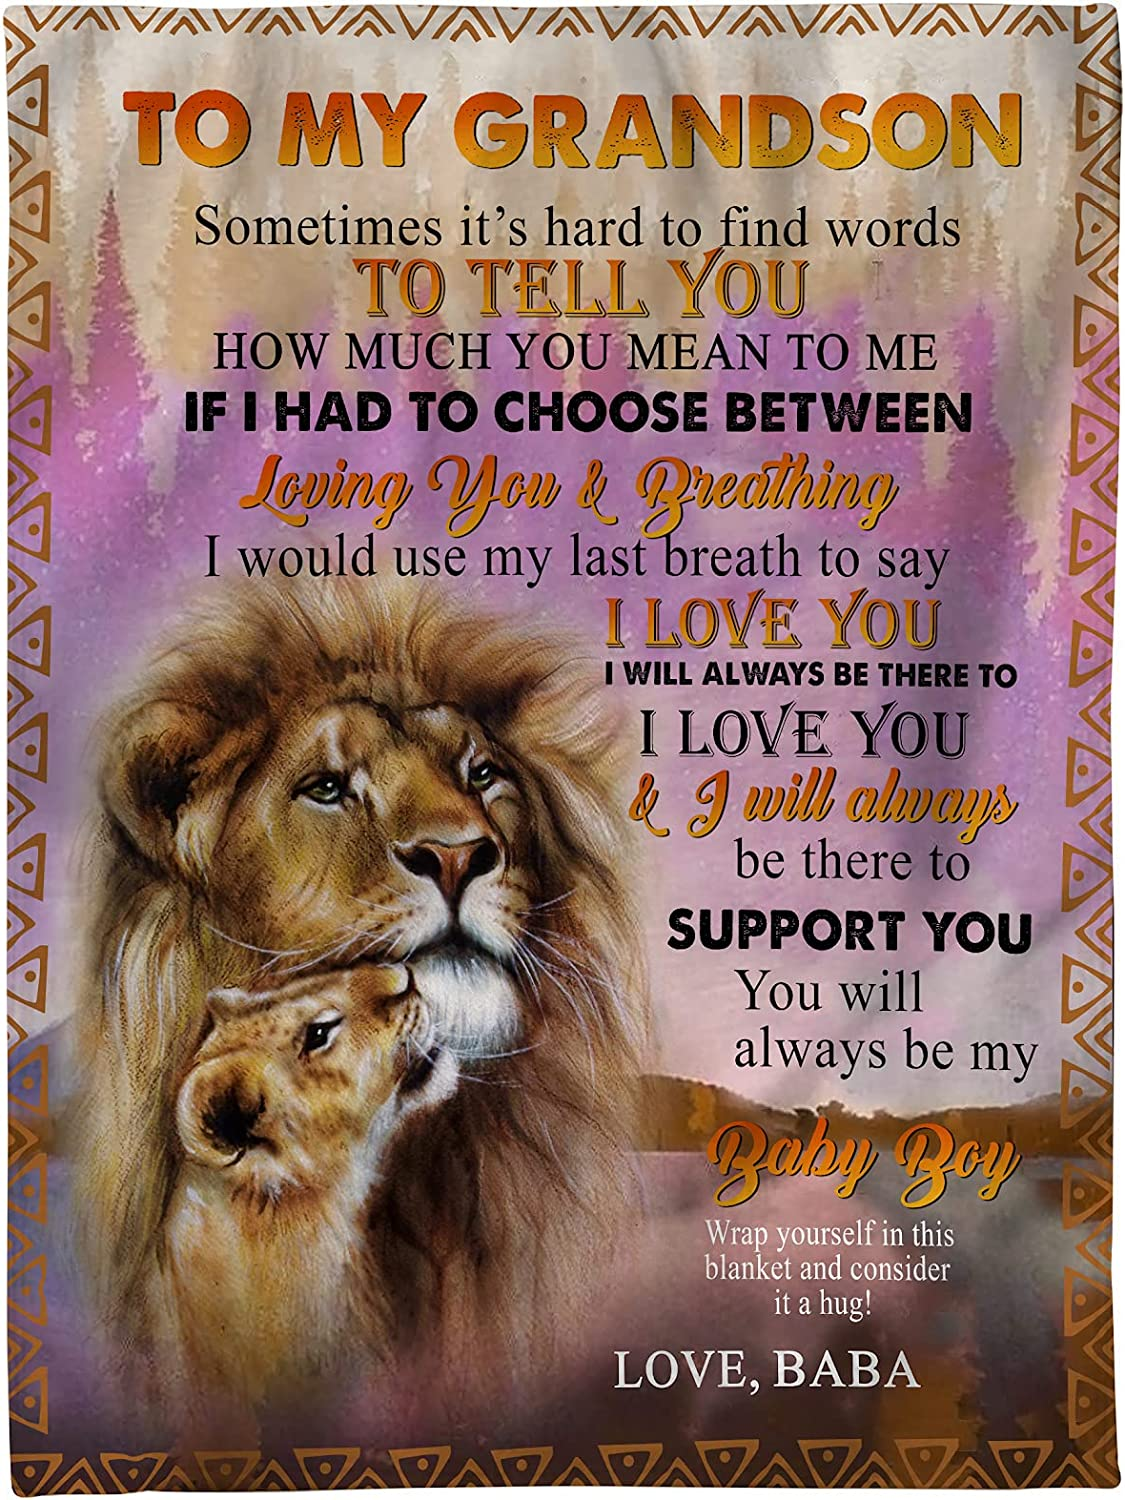 Personalized Blanket-to My Grandson Lion Love You New York Mall Indianapolis Mall Always Support